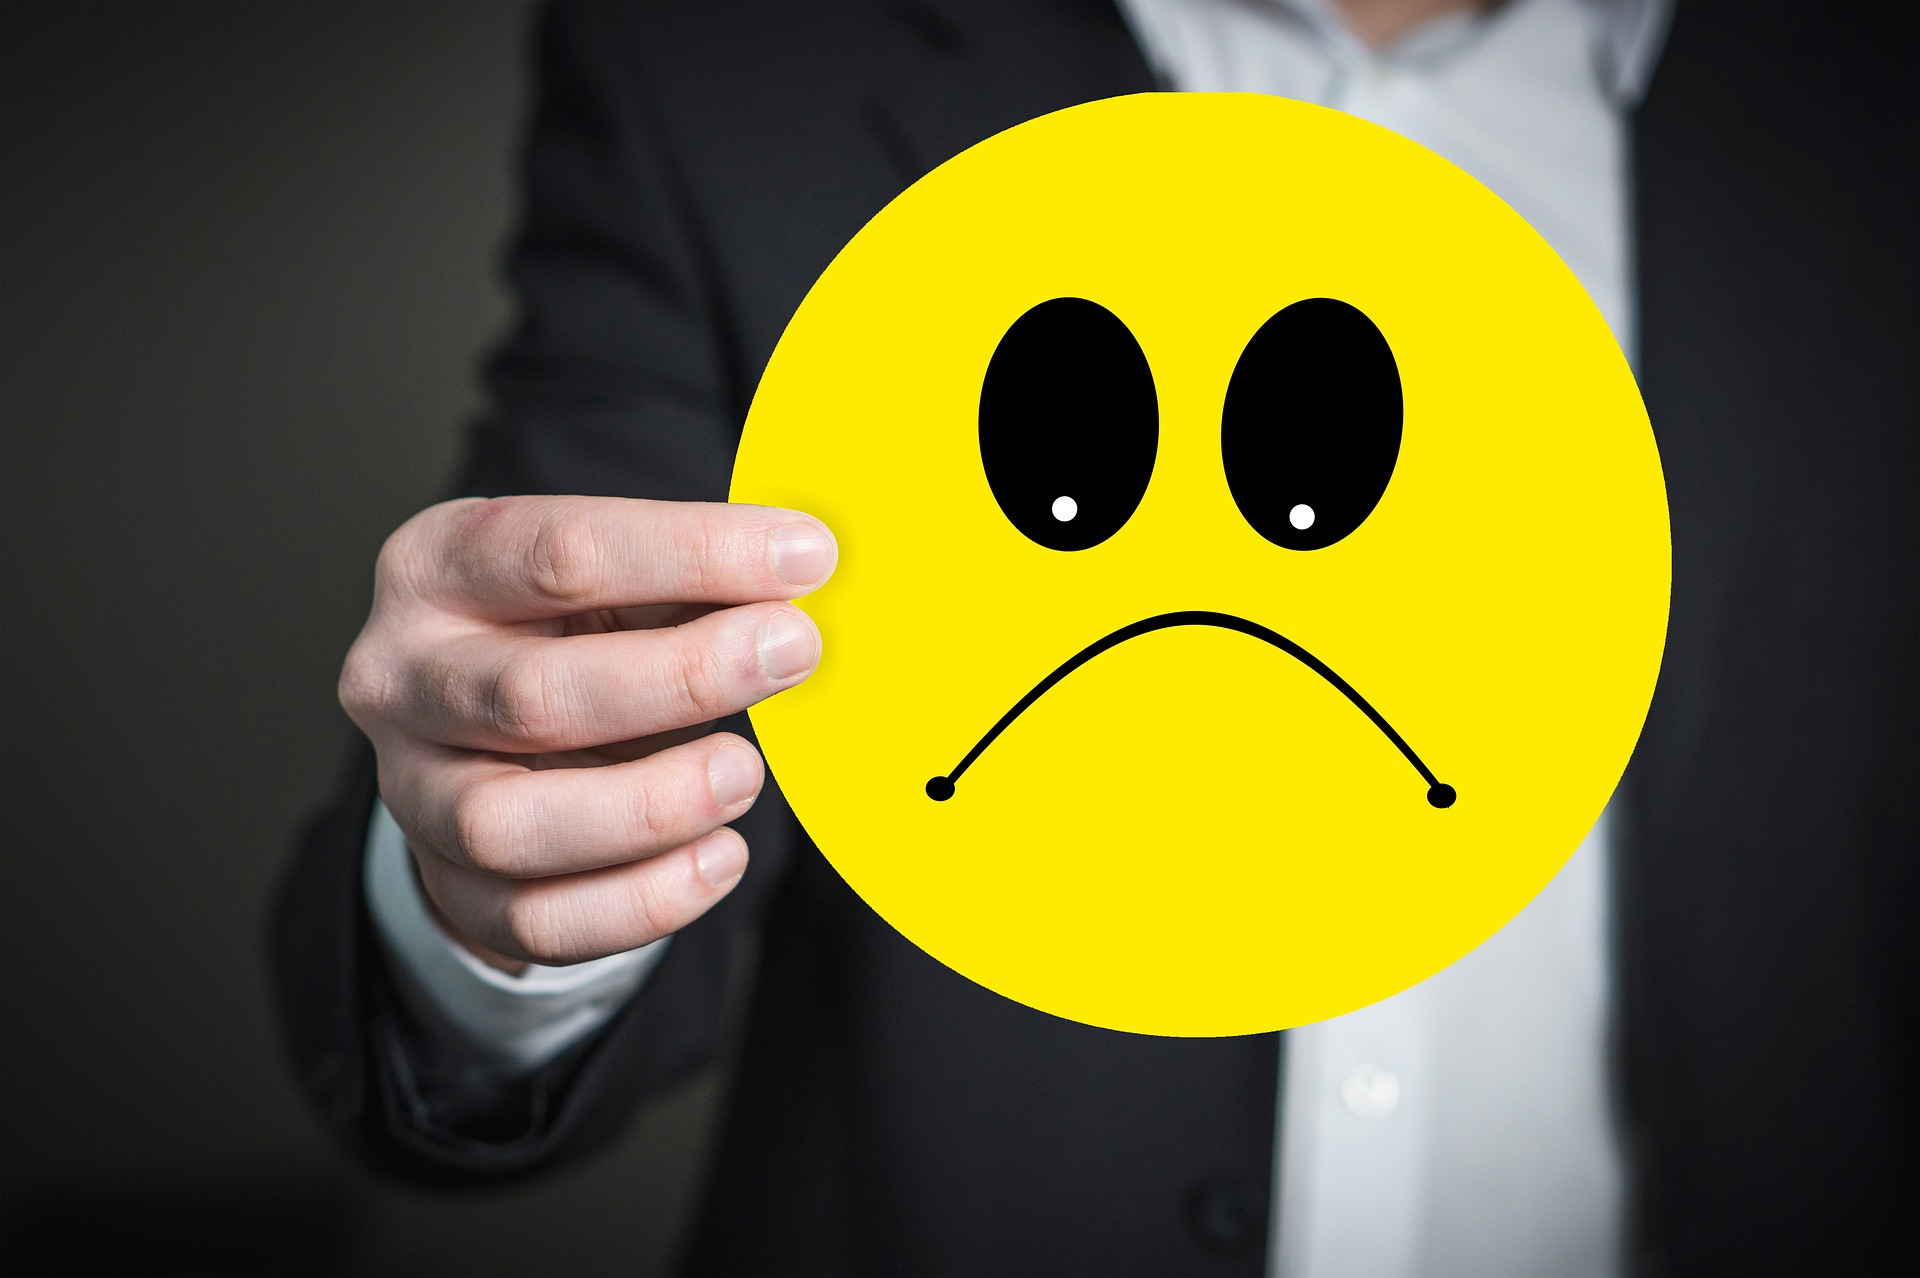 5 Ways to Use Kindness to Defuse Difficult People